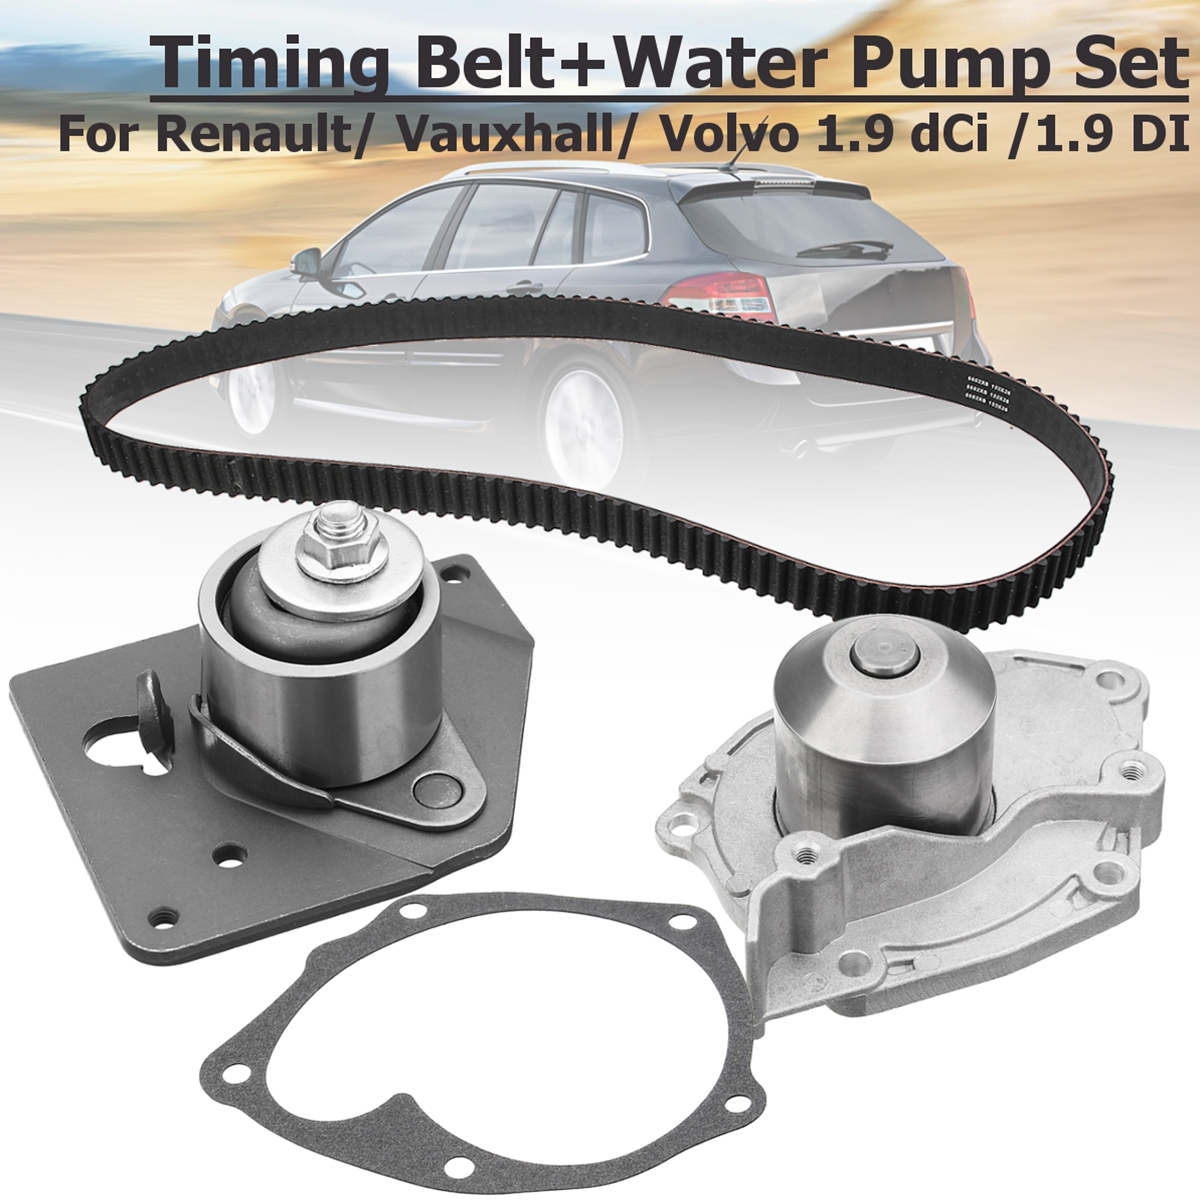 201523385842 Gates Kp15552xs Timing Belt Water Pump Set For Renault 1999 Jeep Grand Vauxhall Volvo 19 Dci Di Engines In Inflatable From Automobiles